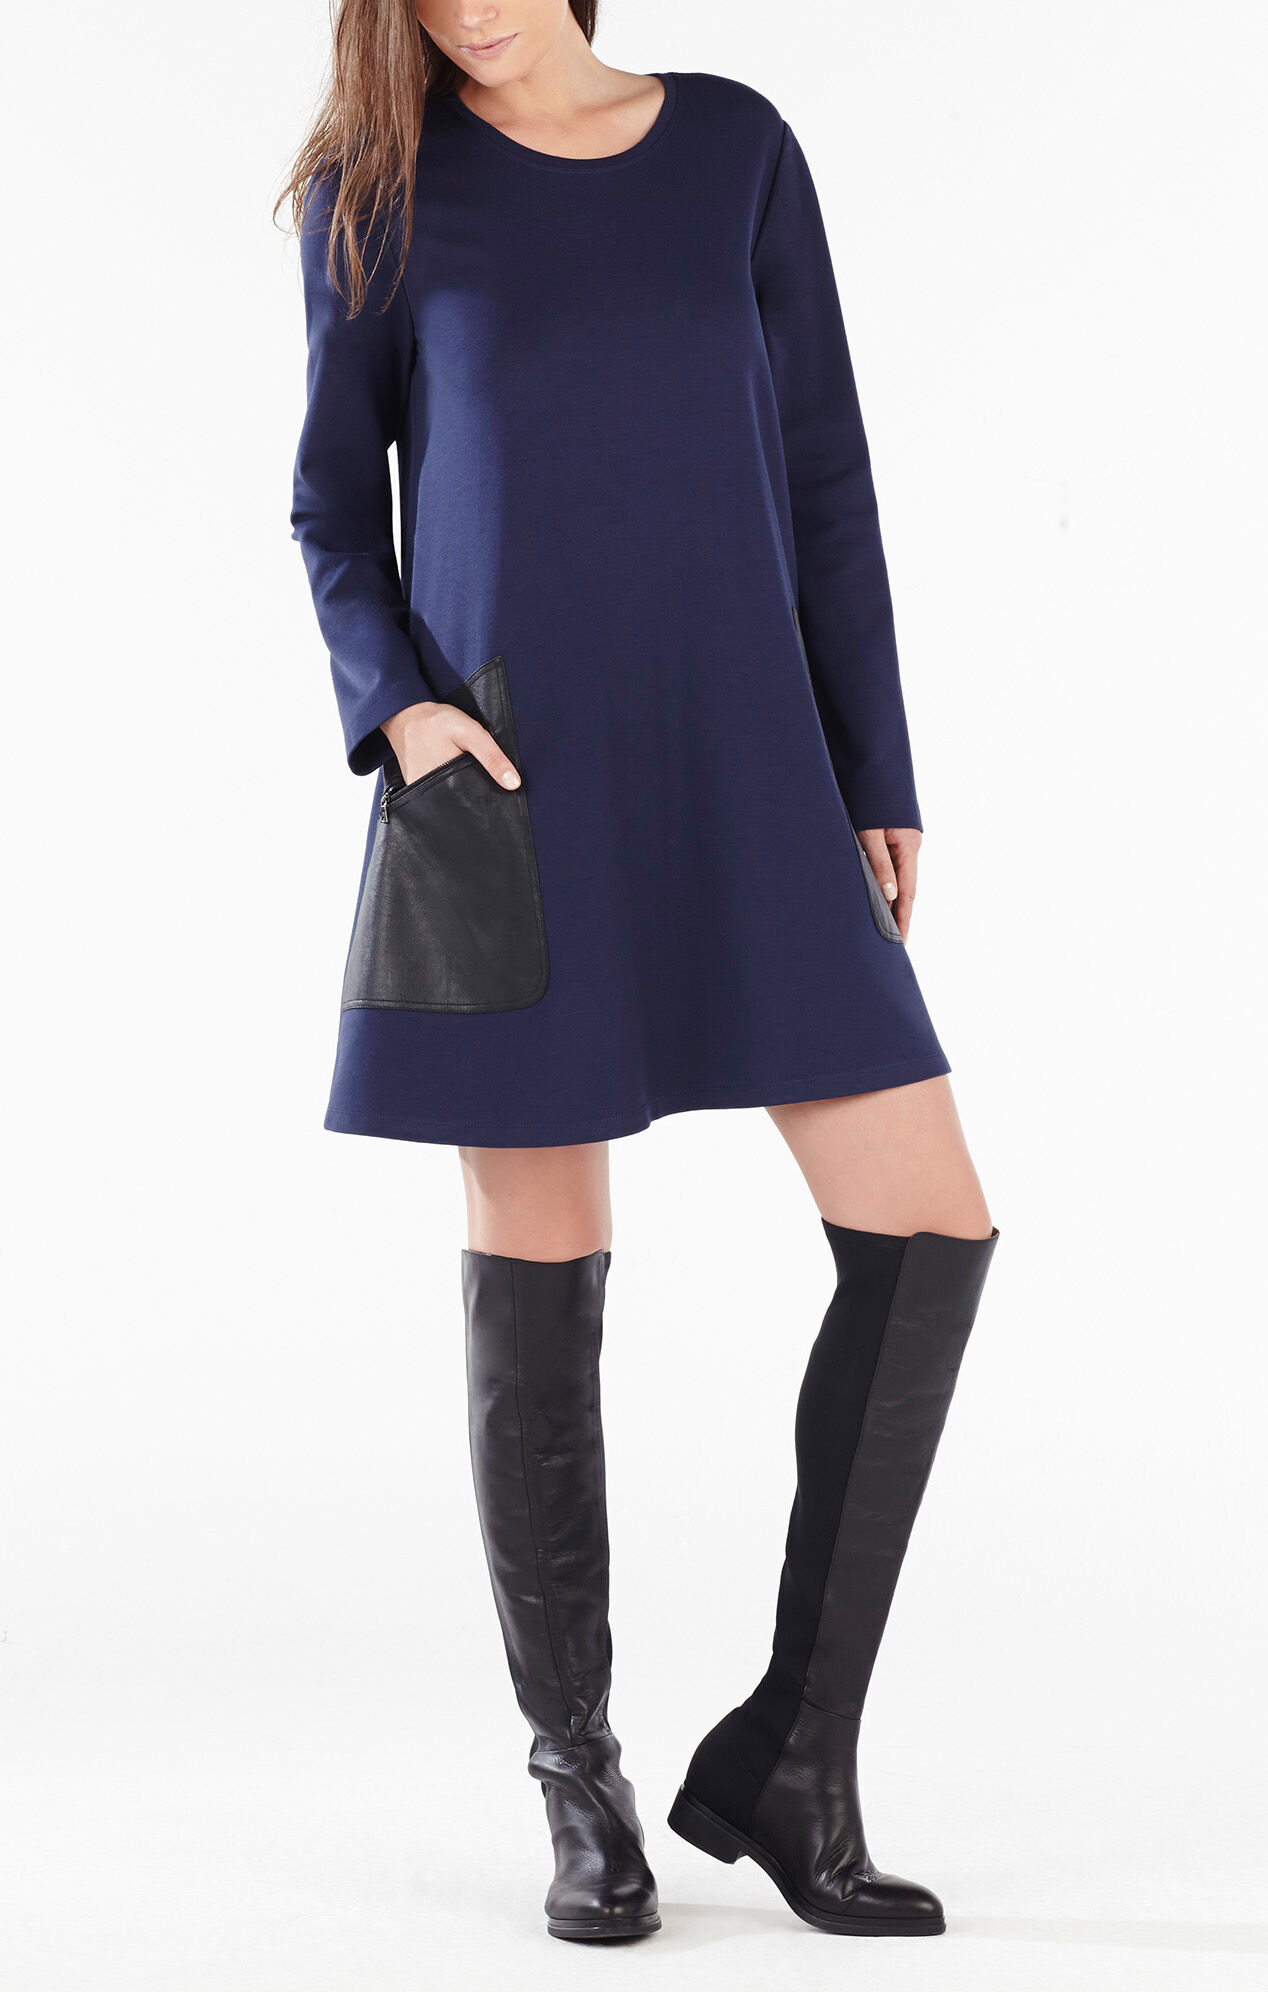 Matteo over the knee leather boots